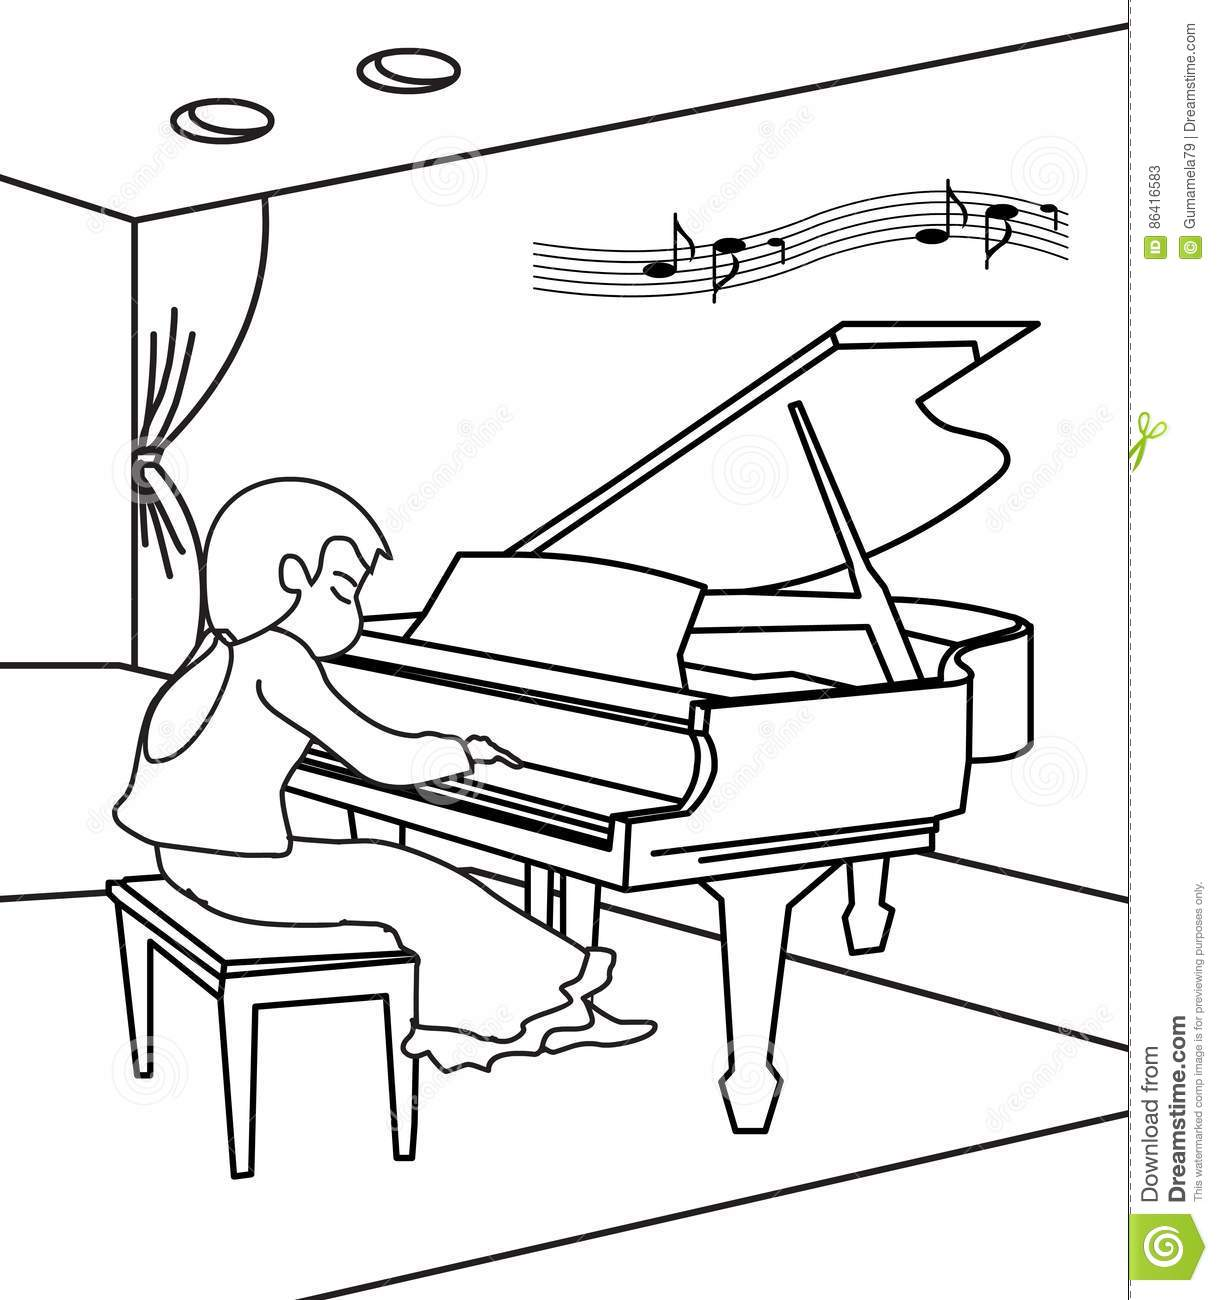 Pianist coloring page stock illustration. Illustration of